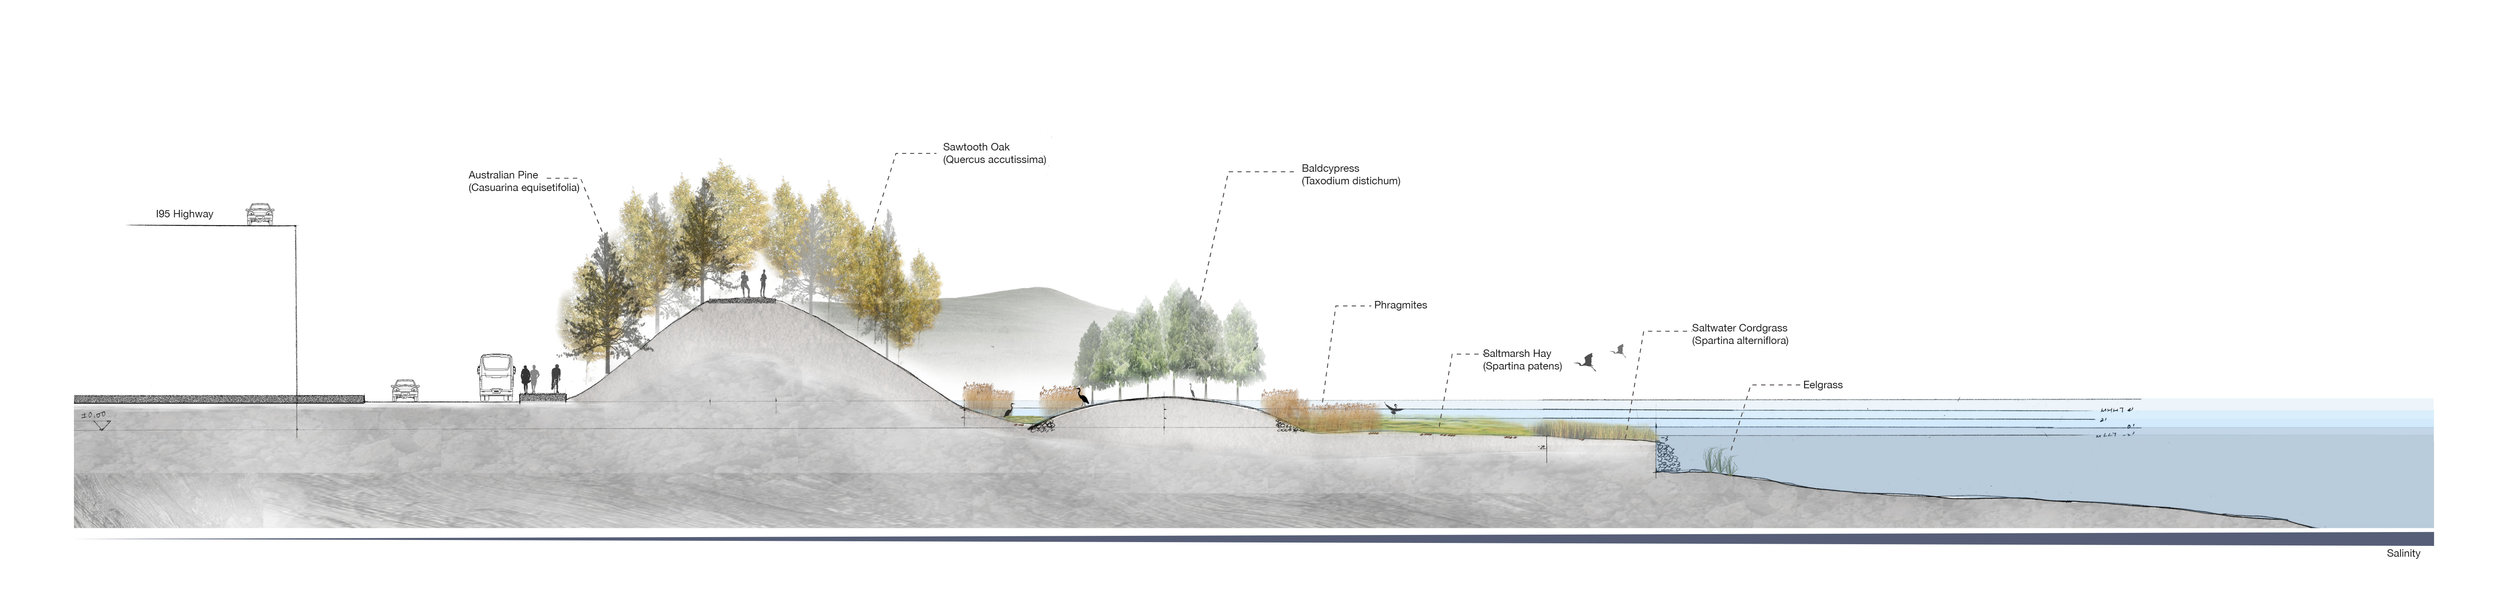 Long Section of the Proposal Site.